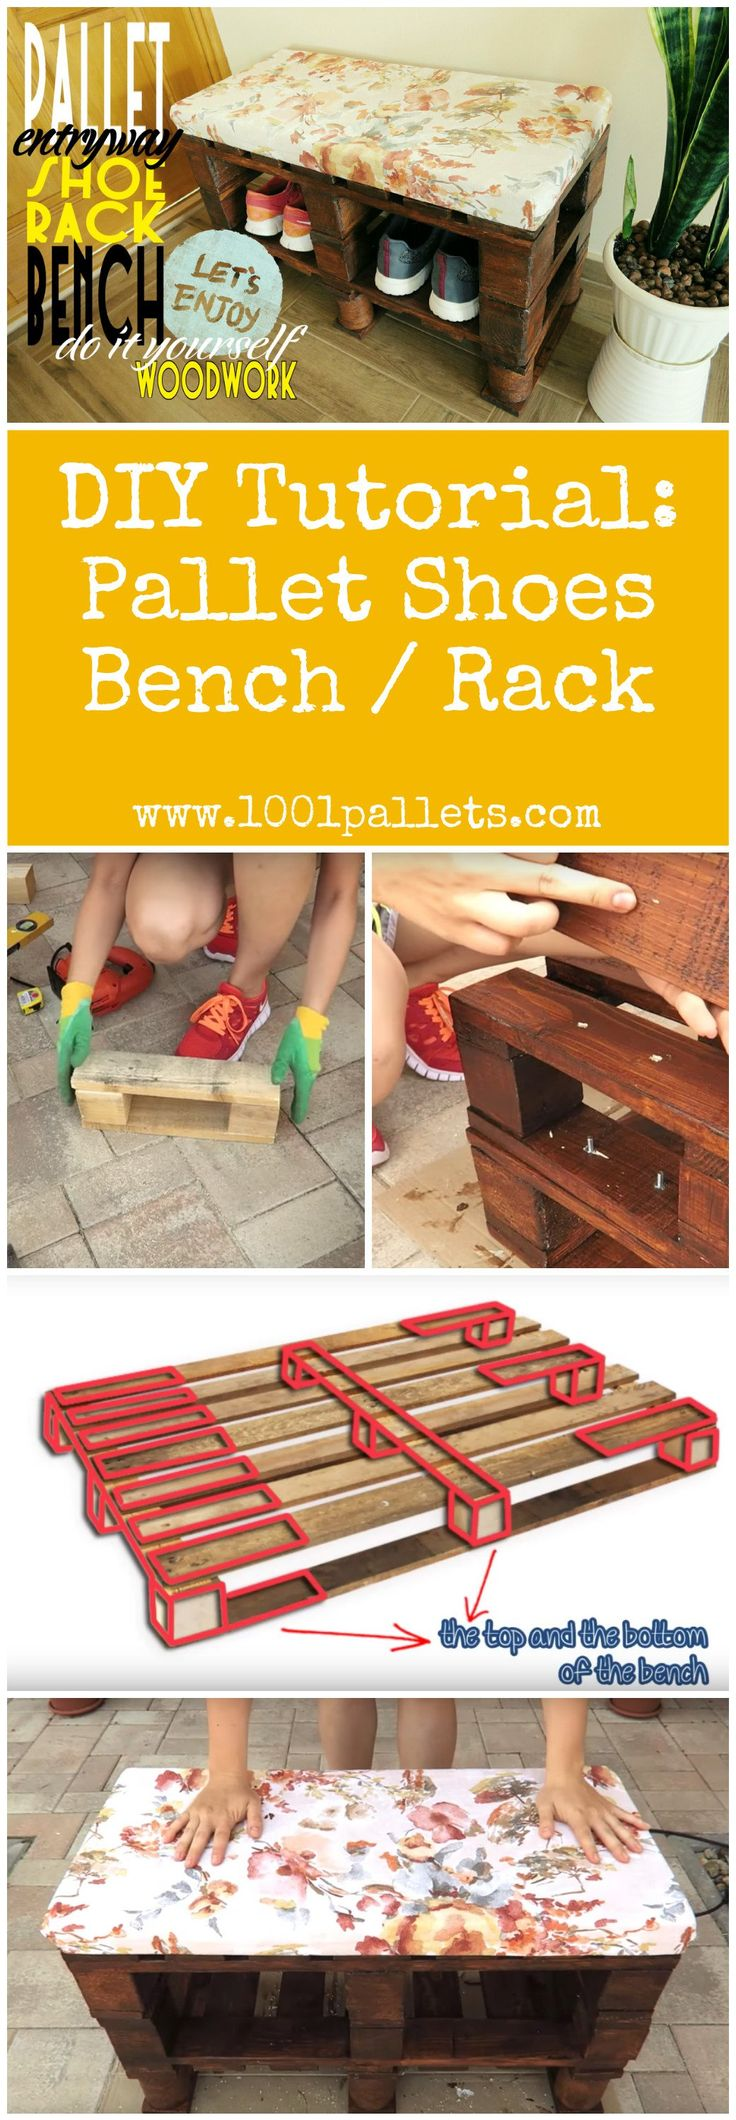 """#Diy, #Entrance, #PalletBench, #PalletShoesRack, #Tutorial    This tutorial by Bettina from """"PaintyCloud"""" will show you how to make an entrance shoes bench / rack out of two pallets.     3Pallets.   5Hours.   We evaluated this project as an easy difficulty project.  Available as aPDF File. T"""